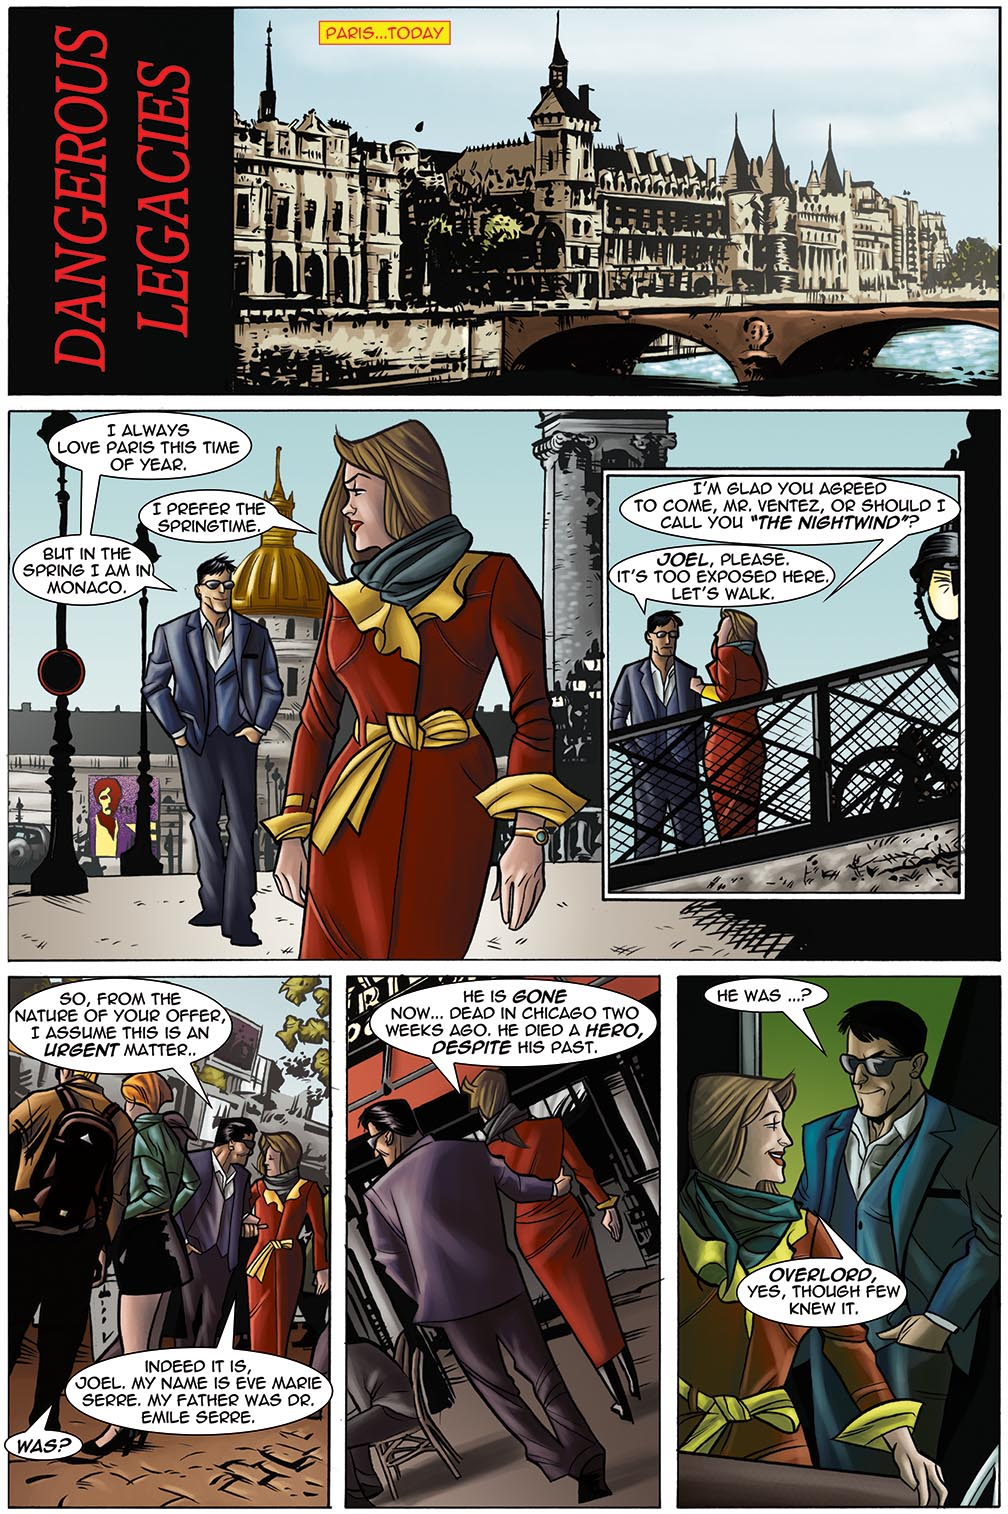 Gateway Legends #1 (2012) Page 13